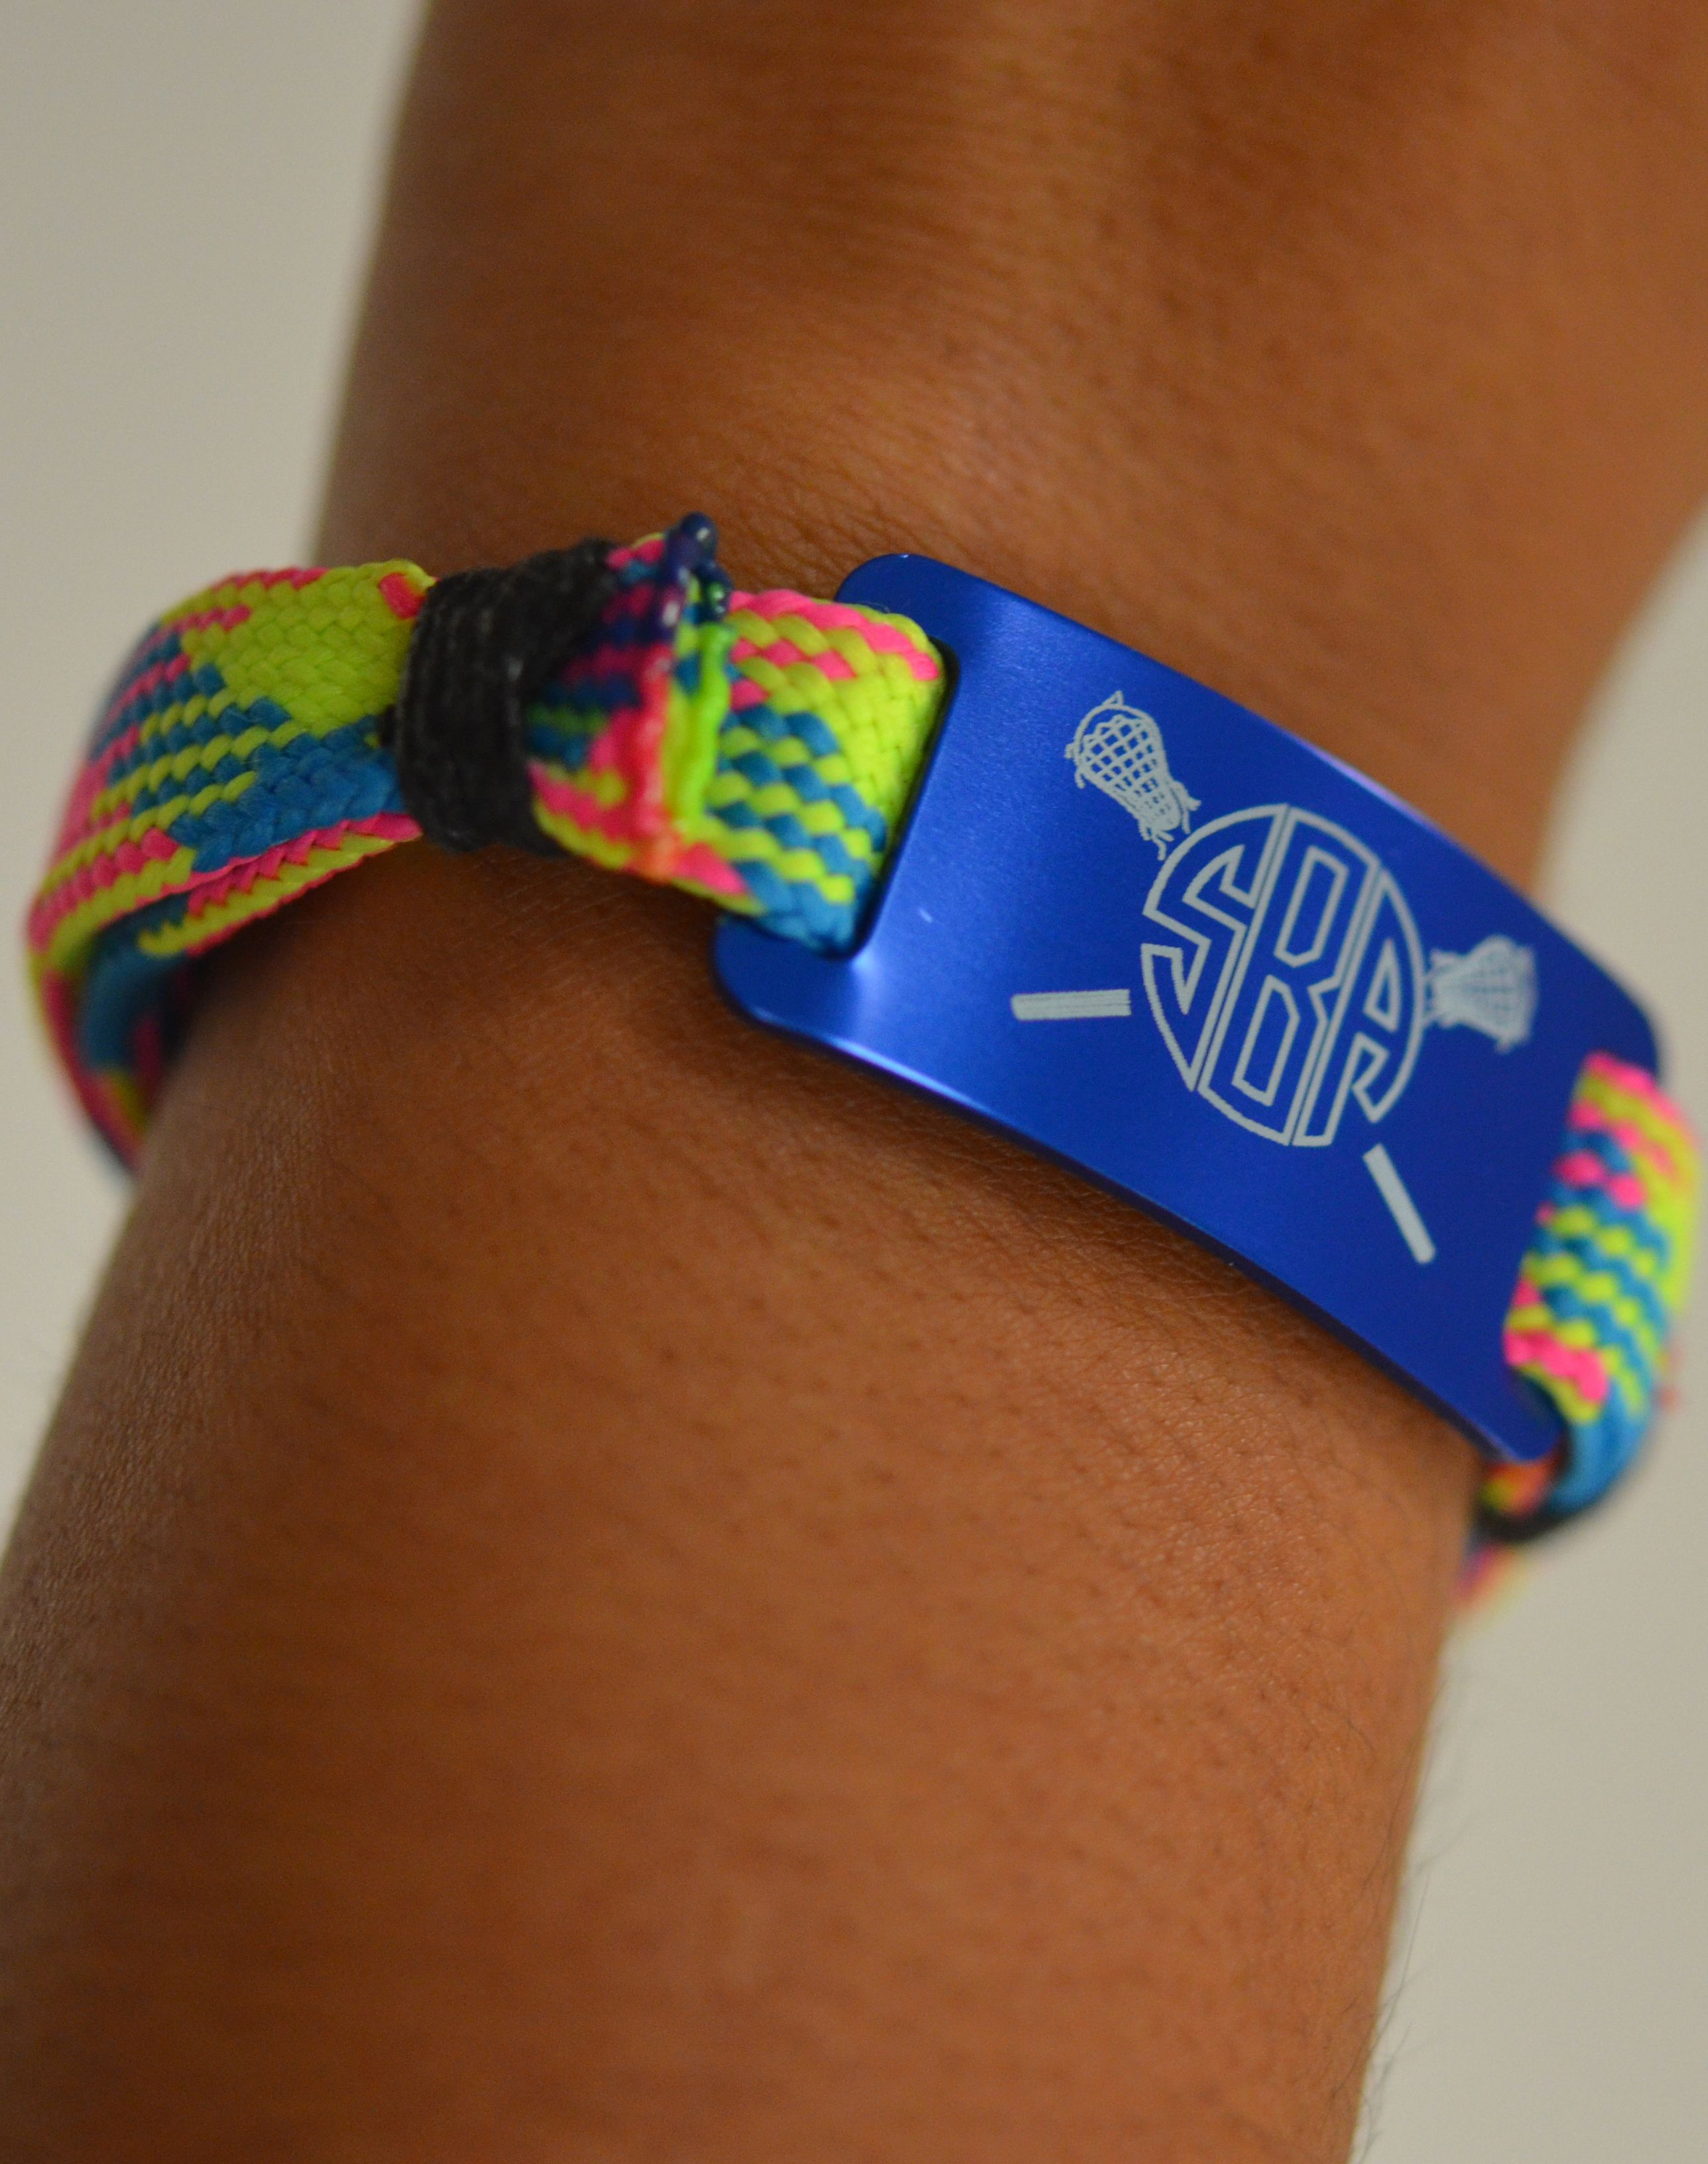 Look how cool our lace bracelets look on they are an awesome option